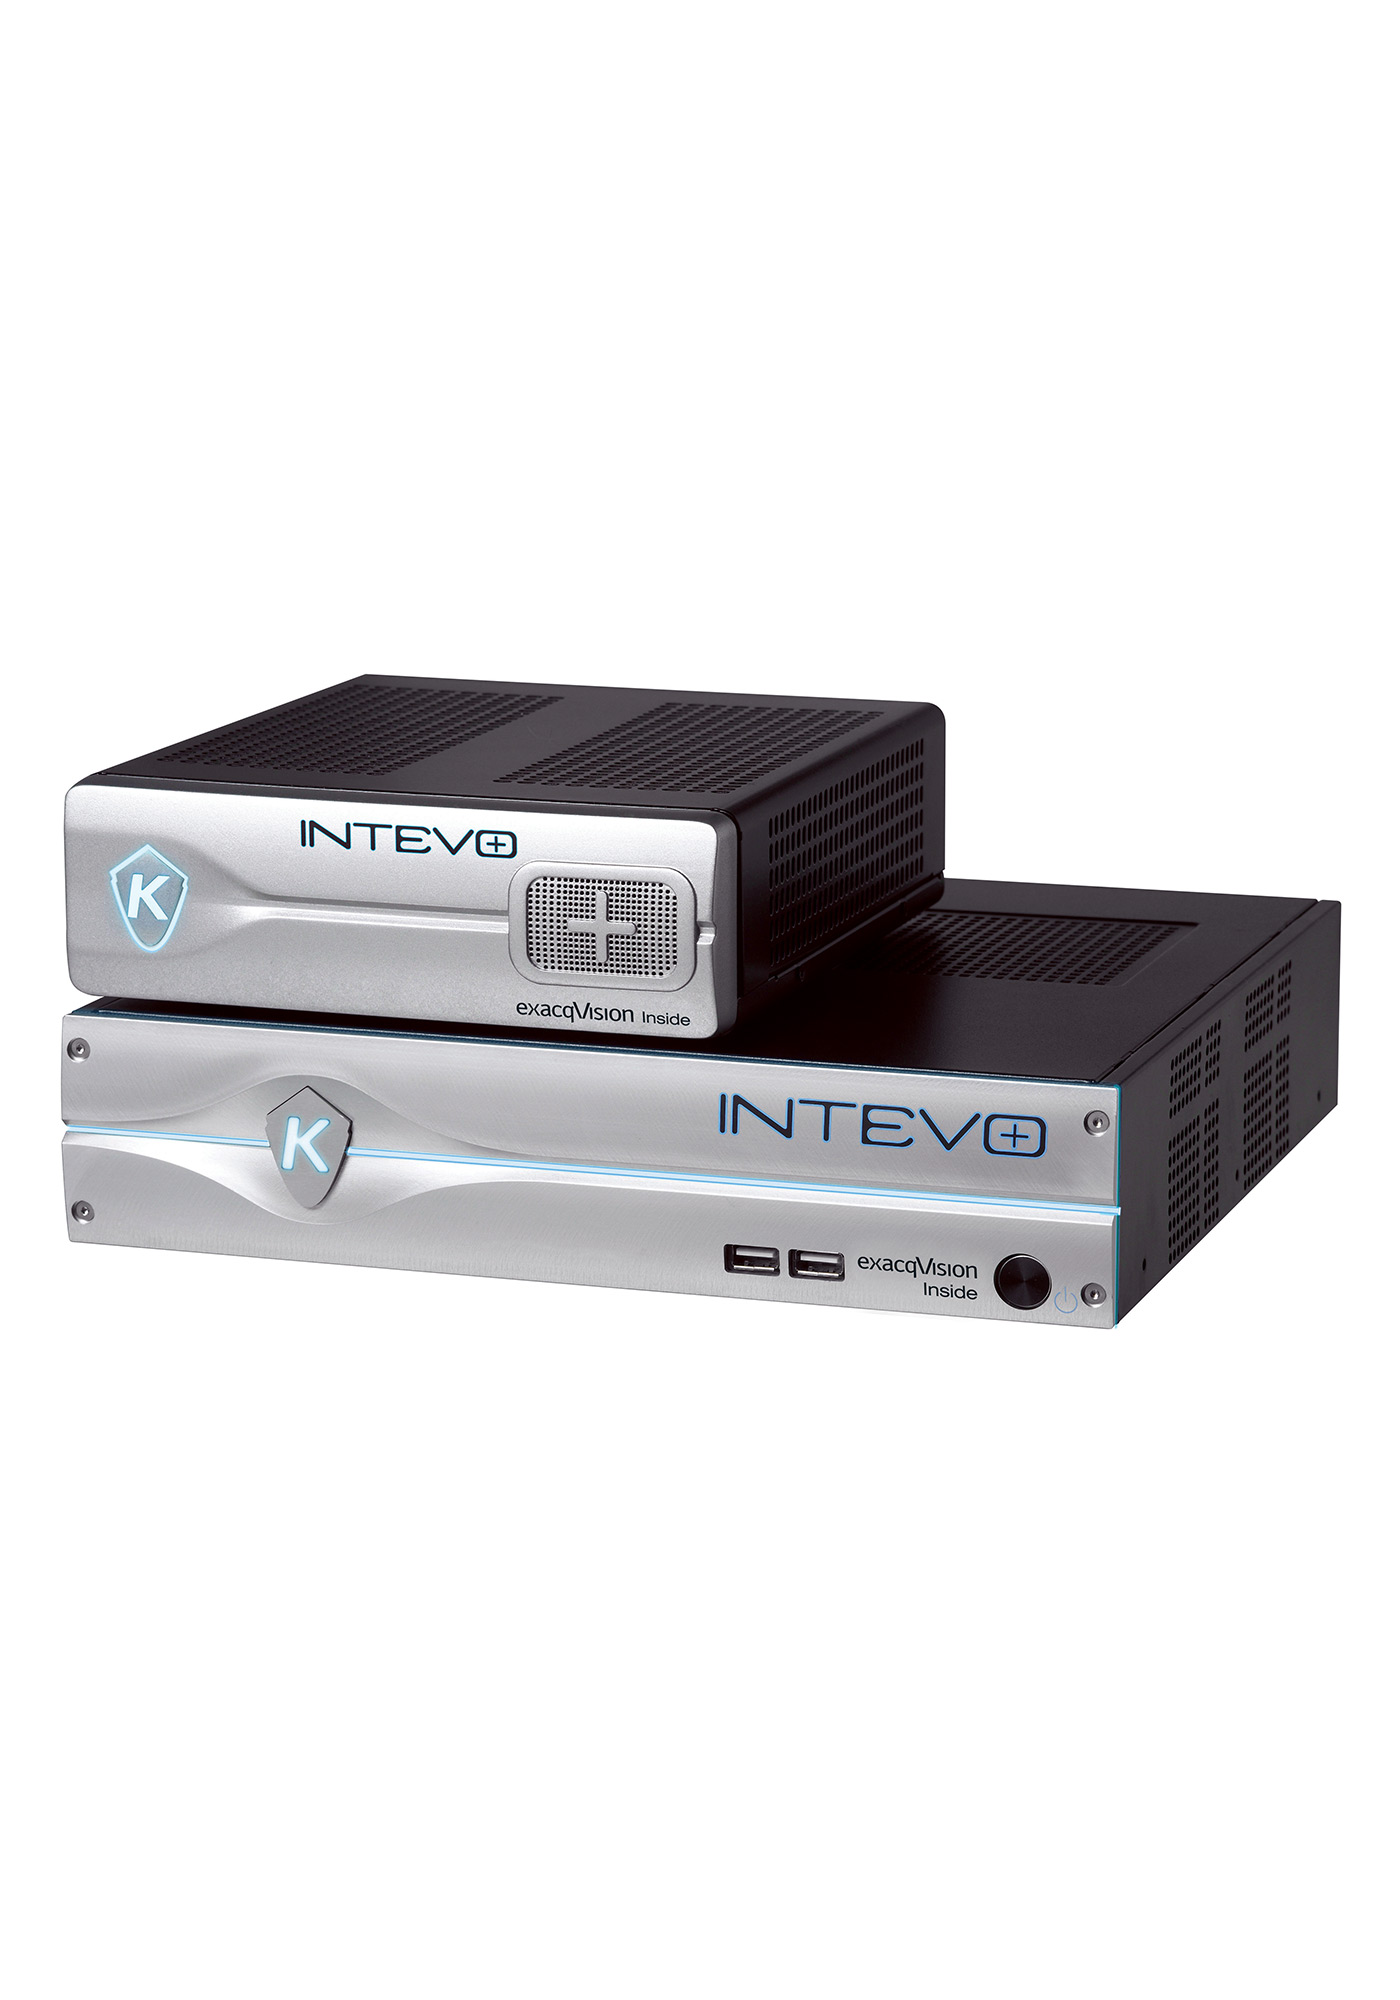 INTEVO-CMP-1TB KANTECH ALL IN ONE HARDWAR PLATFORM 1TB HDD INTEL CORE PROCESSOR WINDOWS 7 PRE LOADED WITH ENTRAPASS CORPORATE & AD IP VIDEO FOR UP TO 16 IP CAM 1 YEAR SOFTWARE UPDATES INCLUDED ************************* SPECIAL ORDER ITEM NO RETURNS OR SUBJECT TO RESTOCK FEE *************************